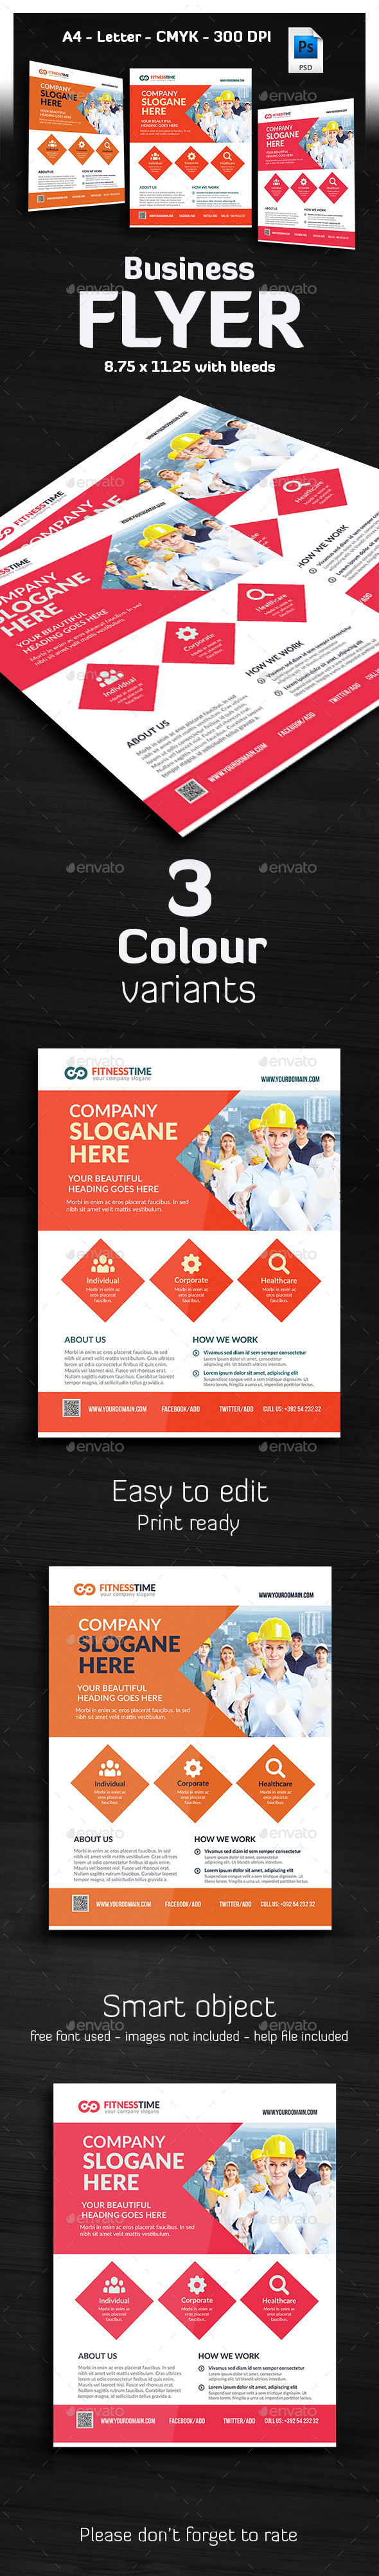 Taktik - Ultimate Business Flyer - Corporate Flyers